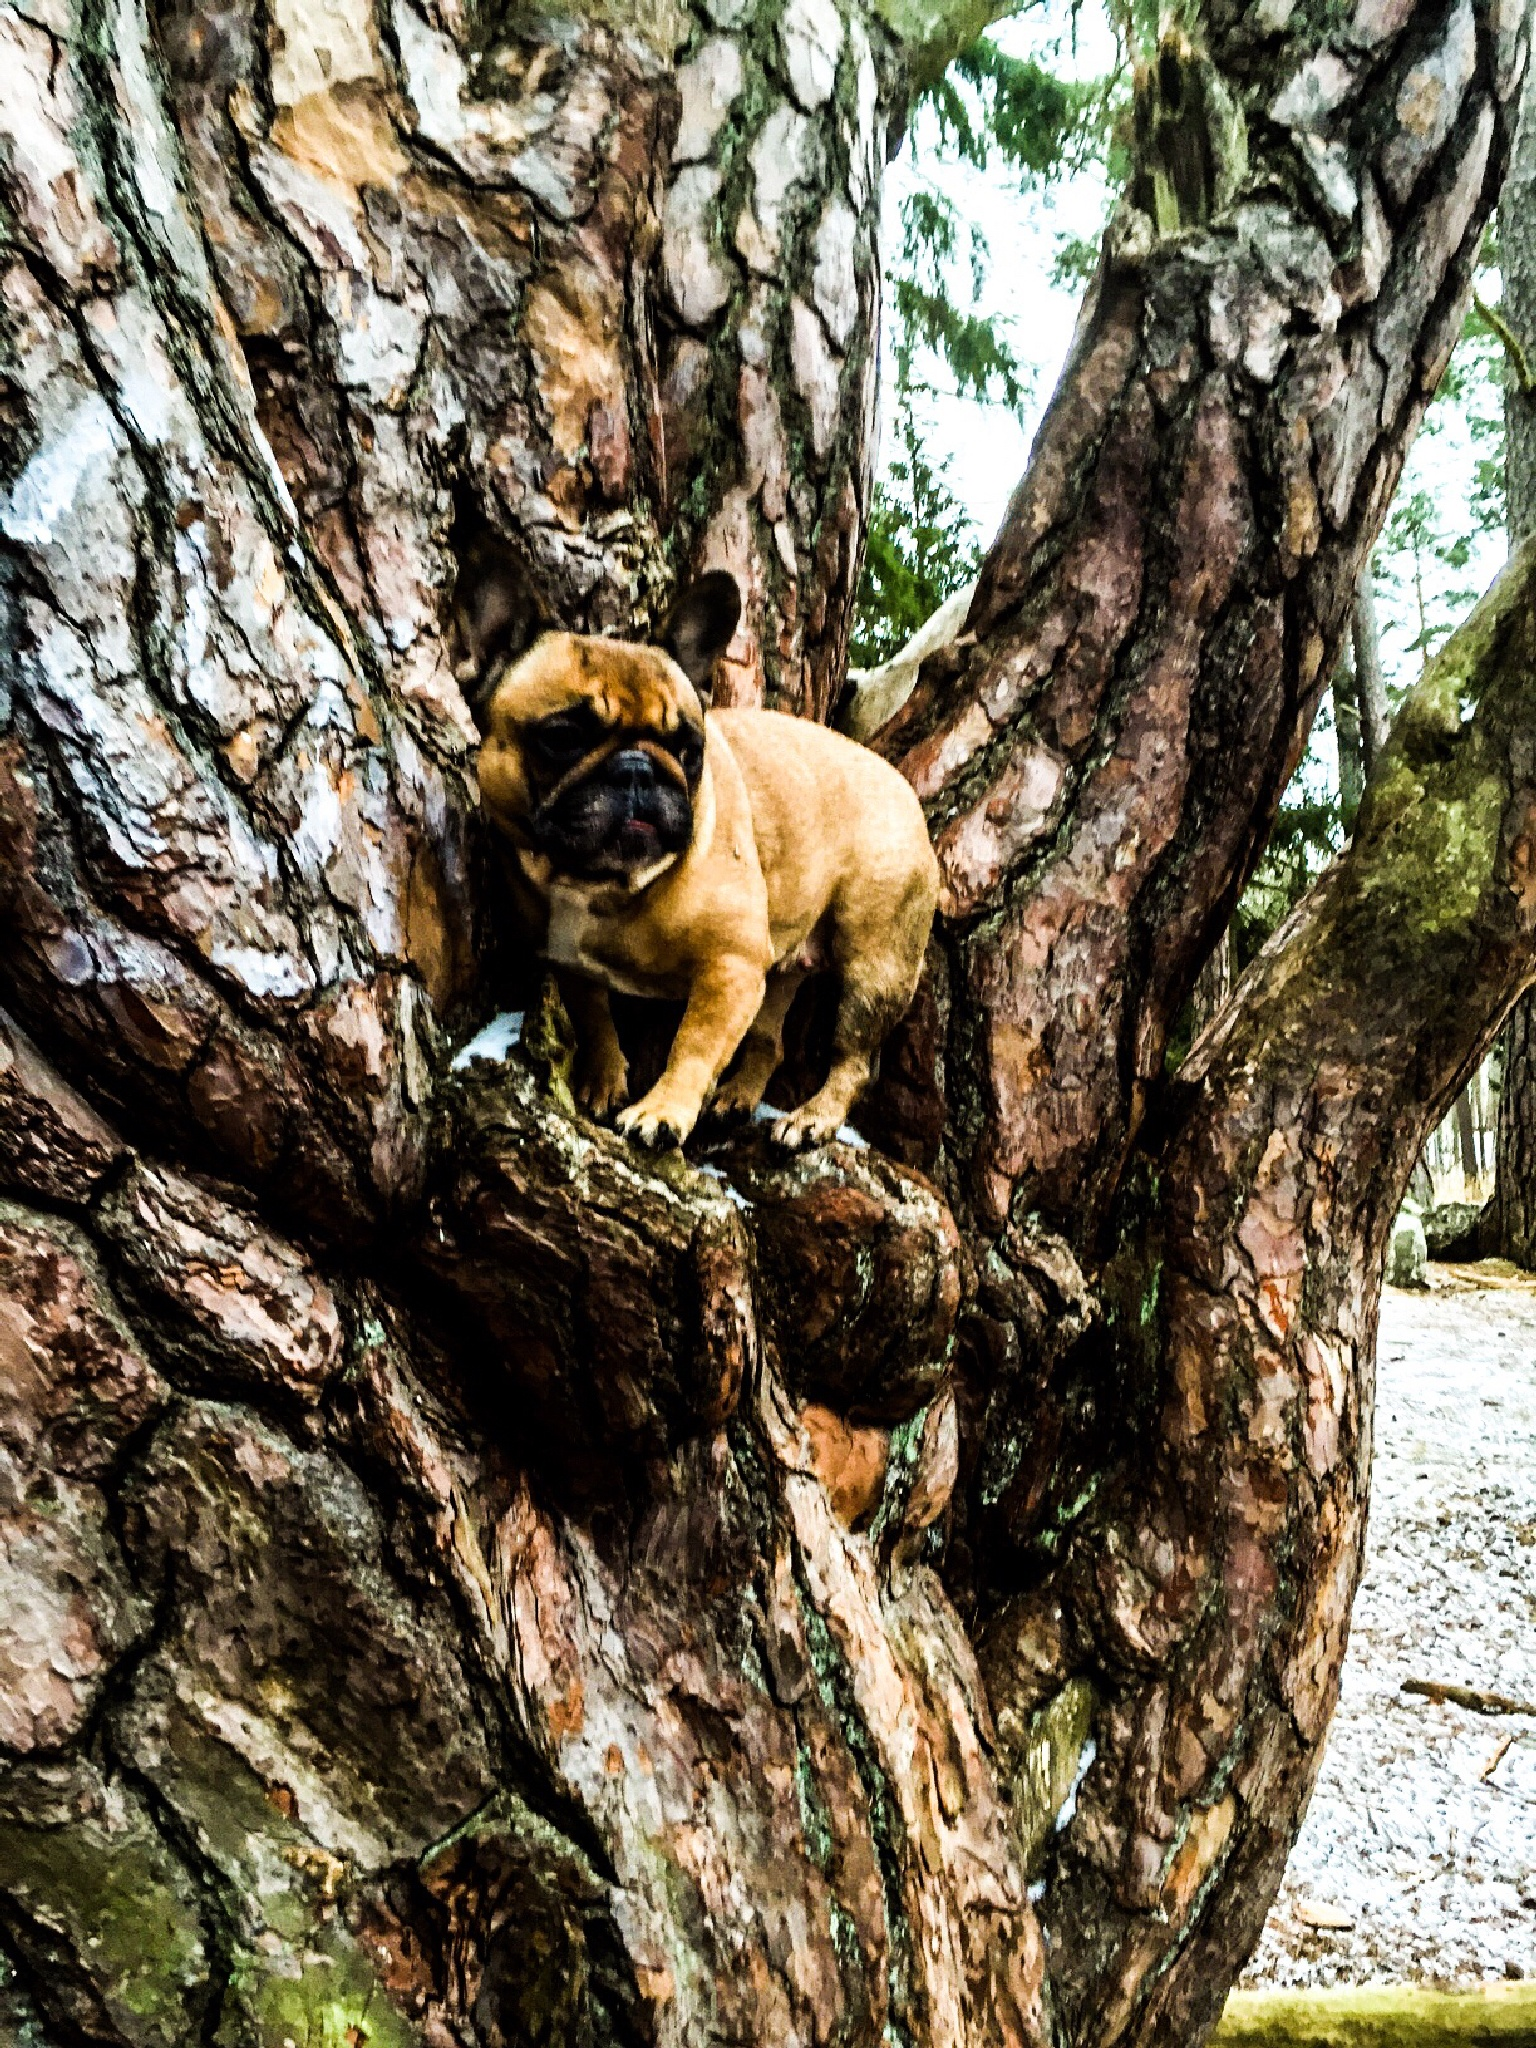 Pebbles our French Bulldogs sitting in her favorite tree by Patric Lundh